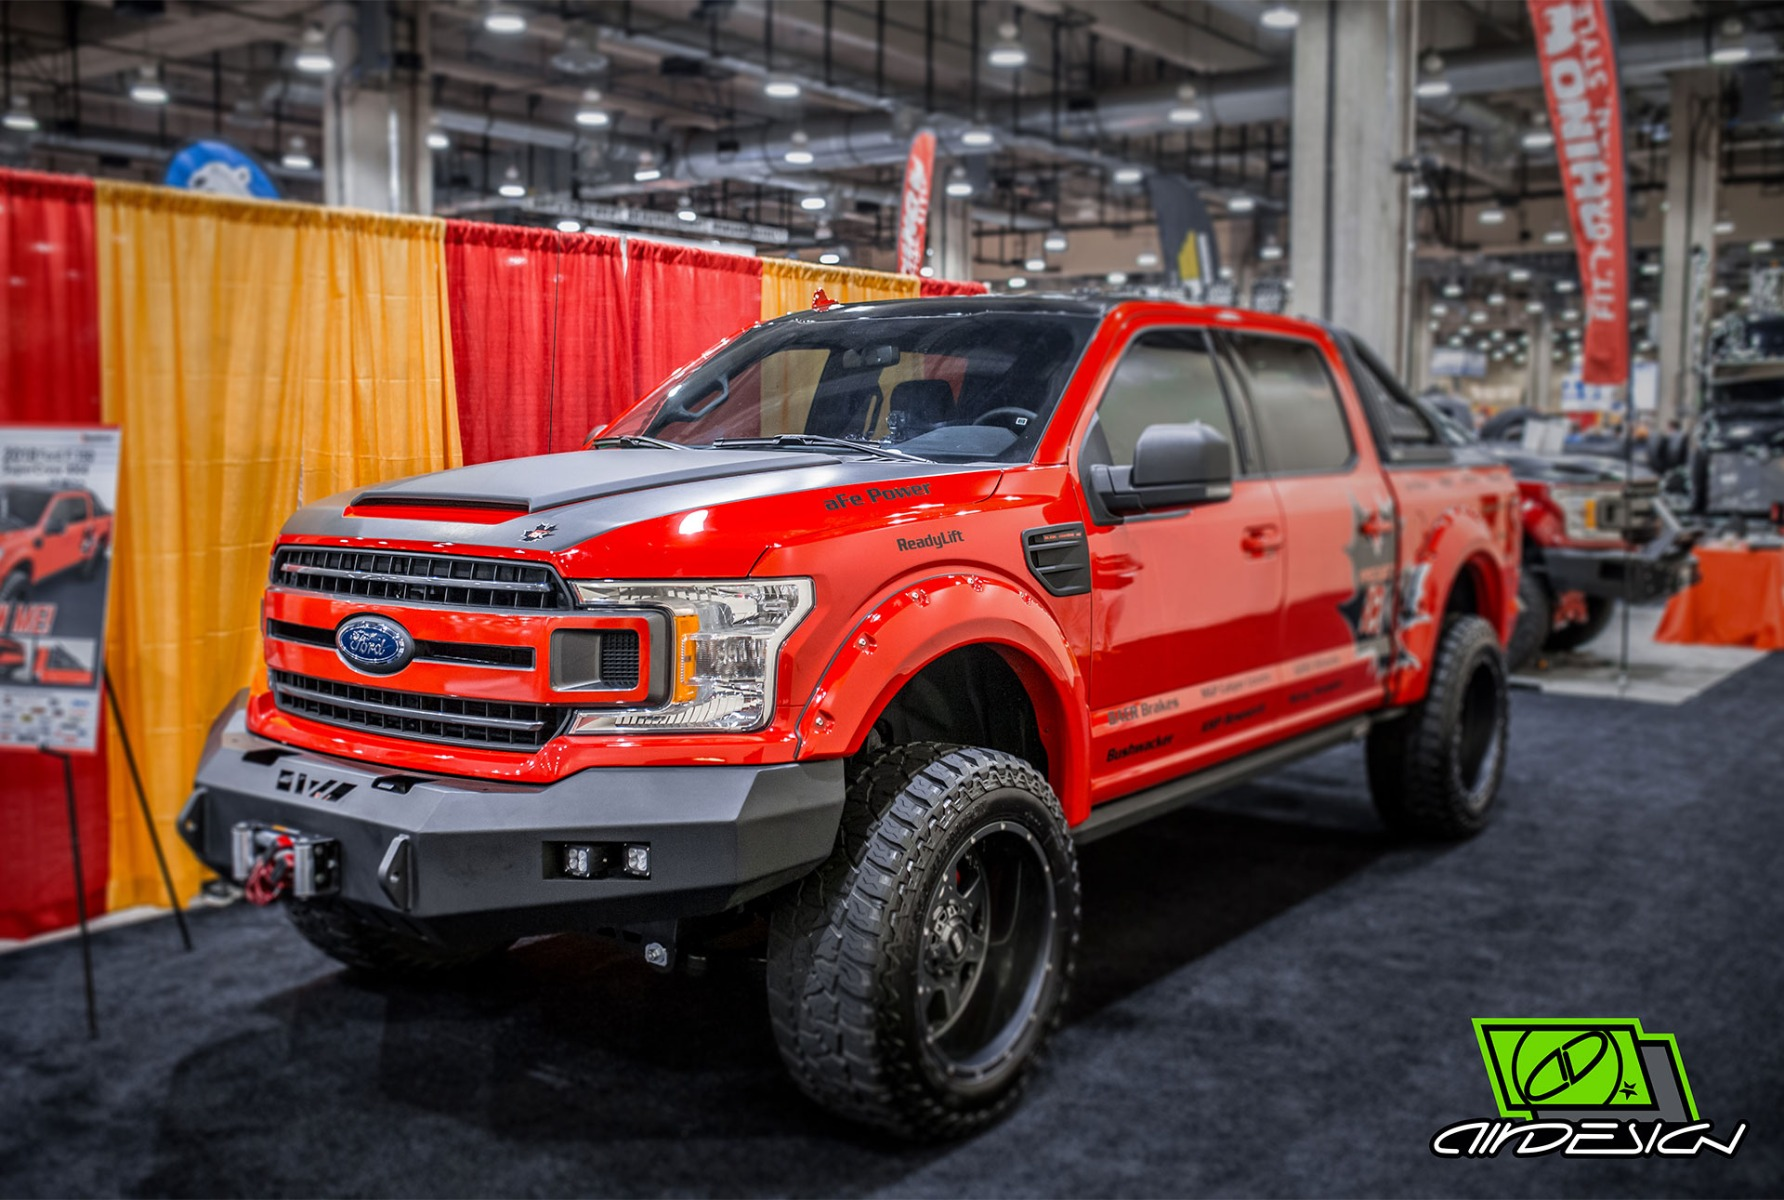 Air Design Ford F-150 Off Road Front View